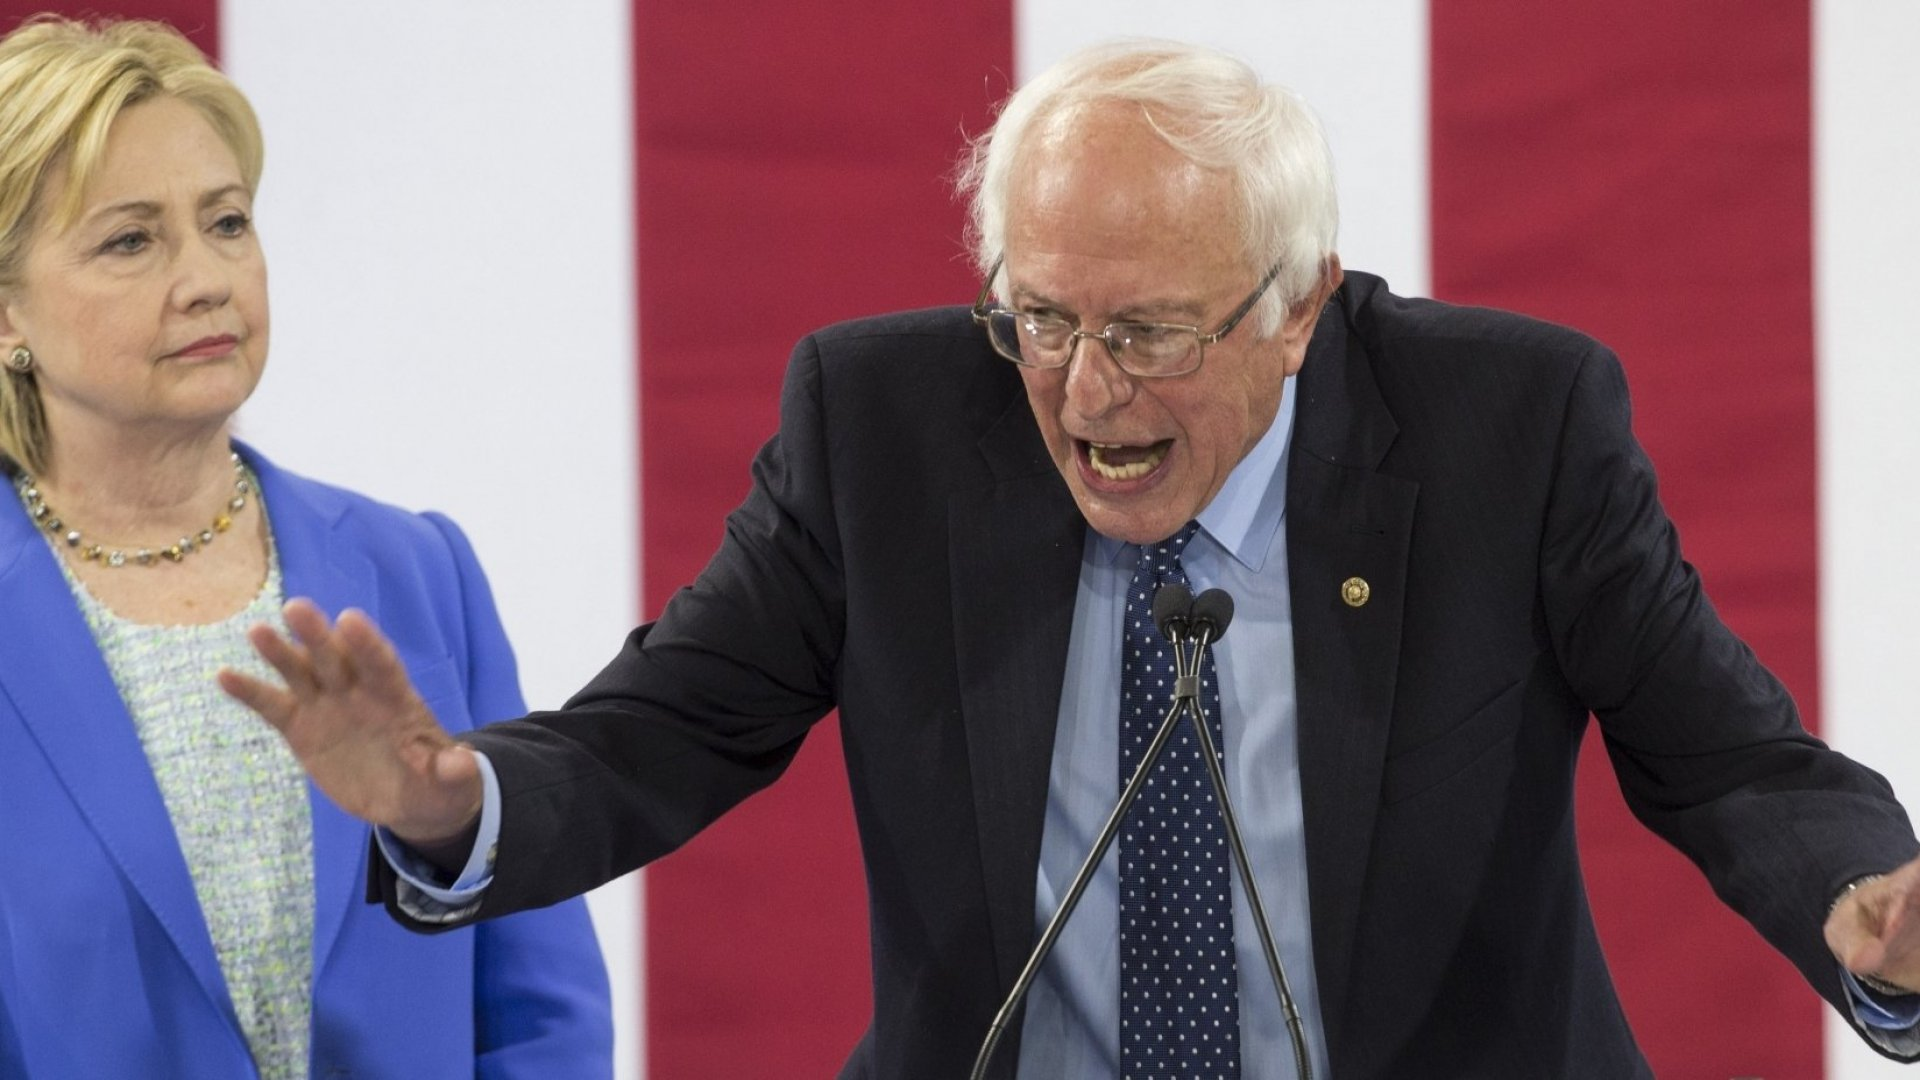 4 Leadership Lessons You Can Learn From Bernie Sanders's Endorsement of Hillary Clinton